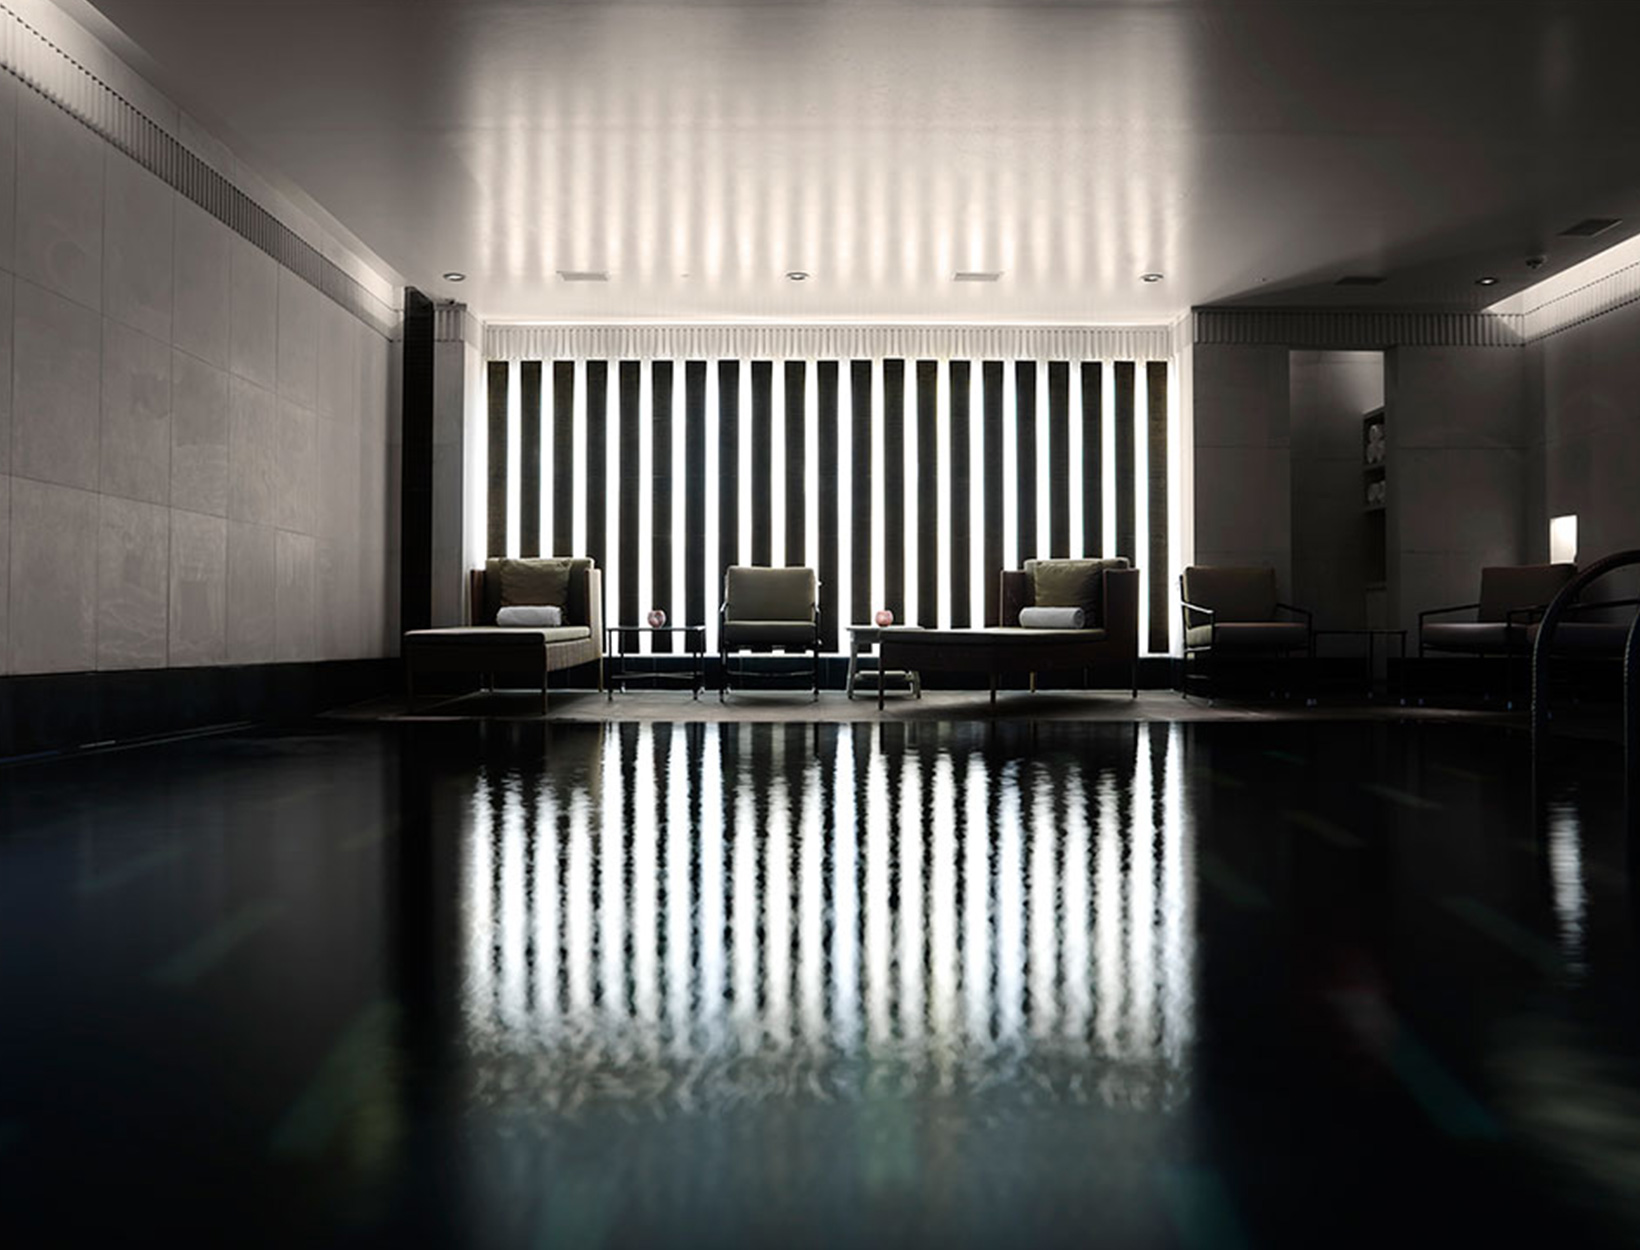 Aman Spa at The Connaught